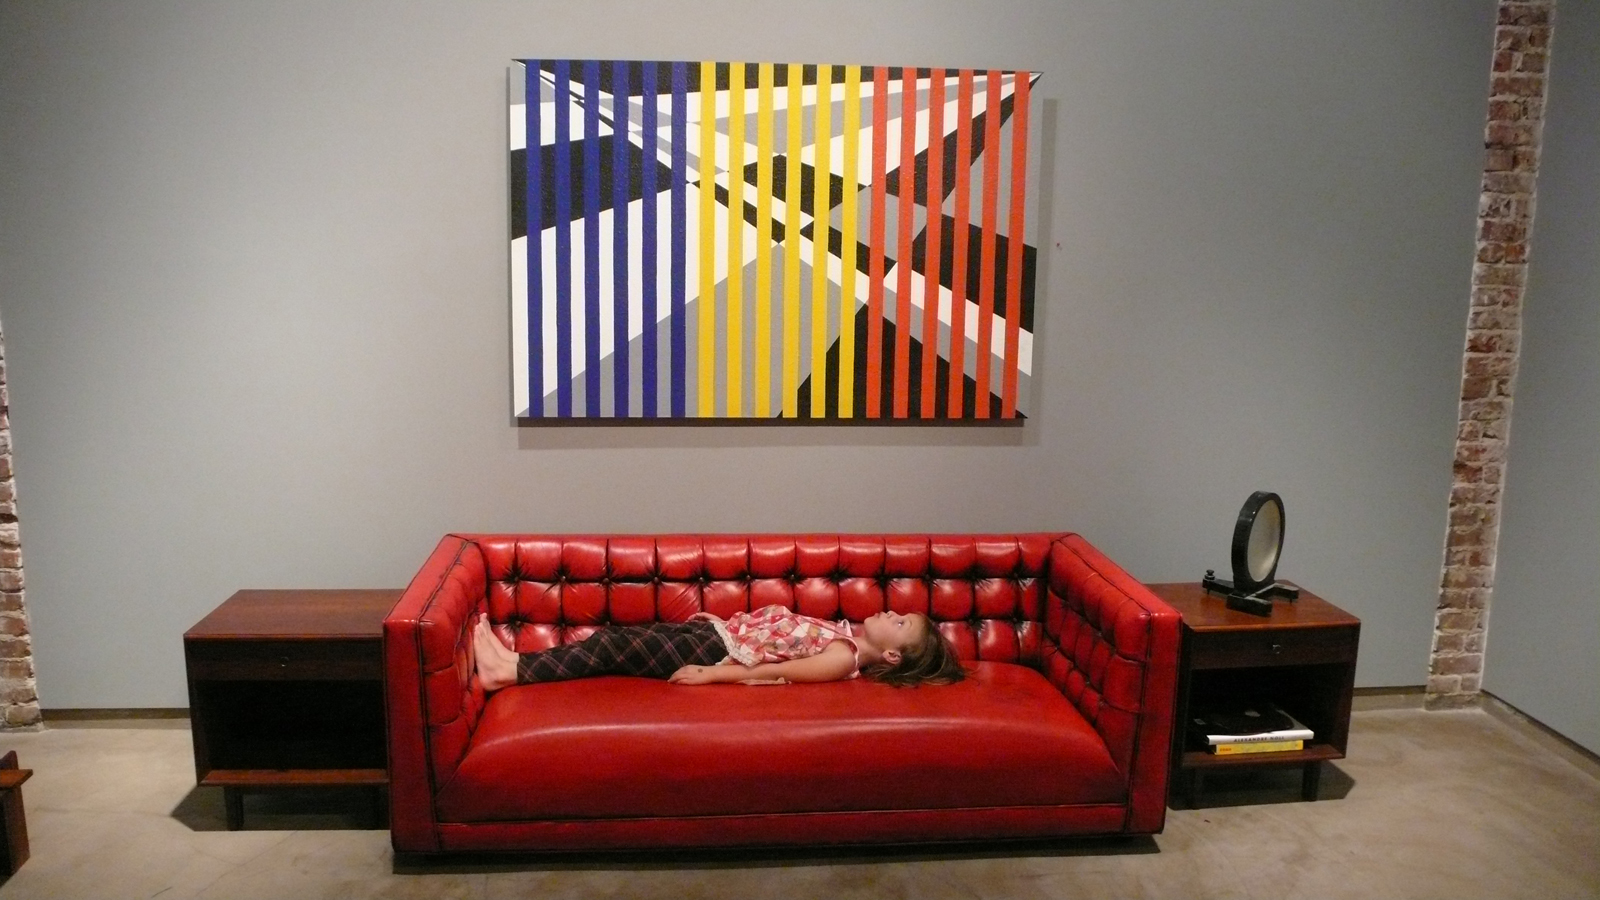 A young visitor on a Milo Baughman tufted sofa in red leather with black accents, beneath <i>Crossroads</i>, a 2000 acrylic-on-Masonite painting by 1960s furniture designer Arthur Ellsworth, which sold on the gallery's opening night.